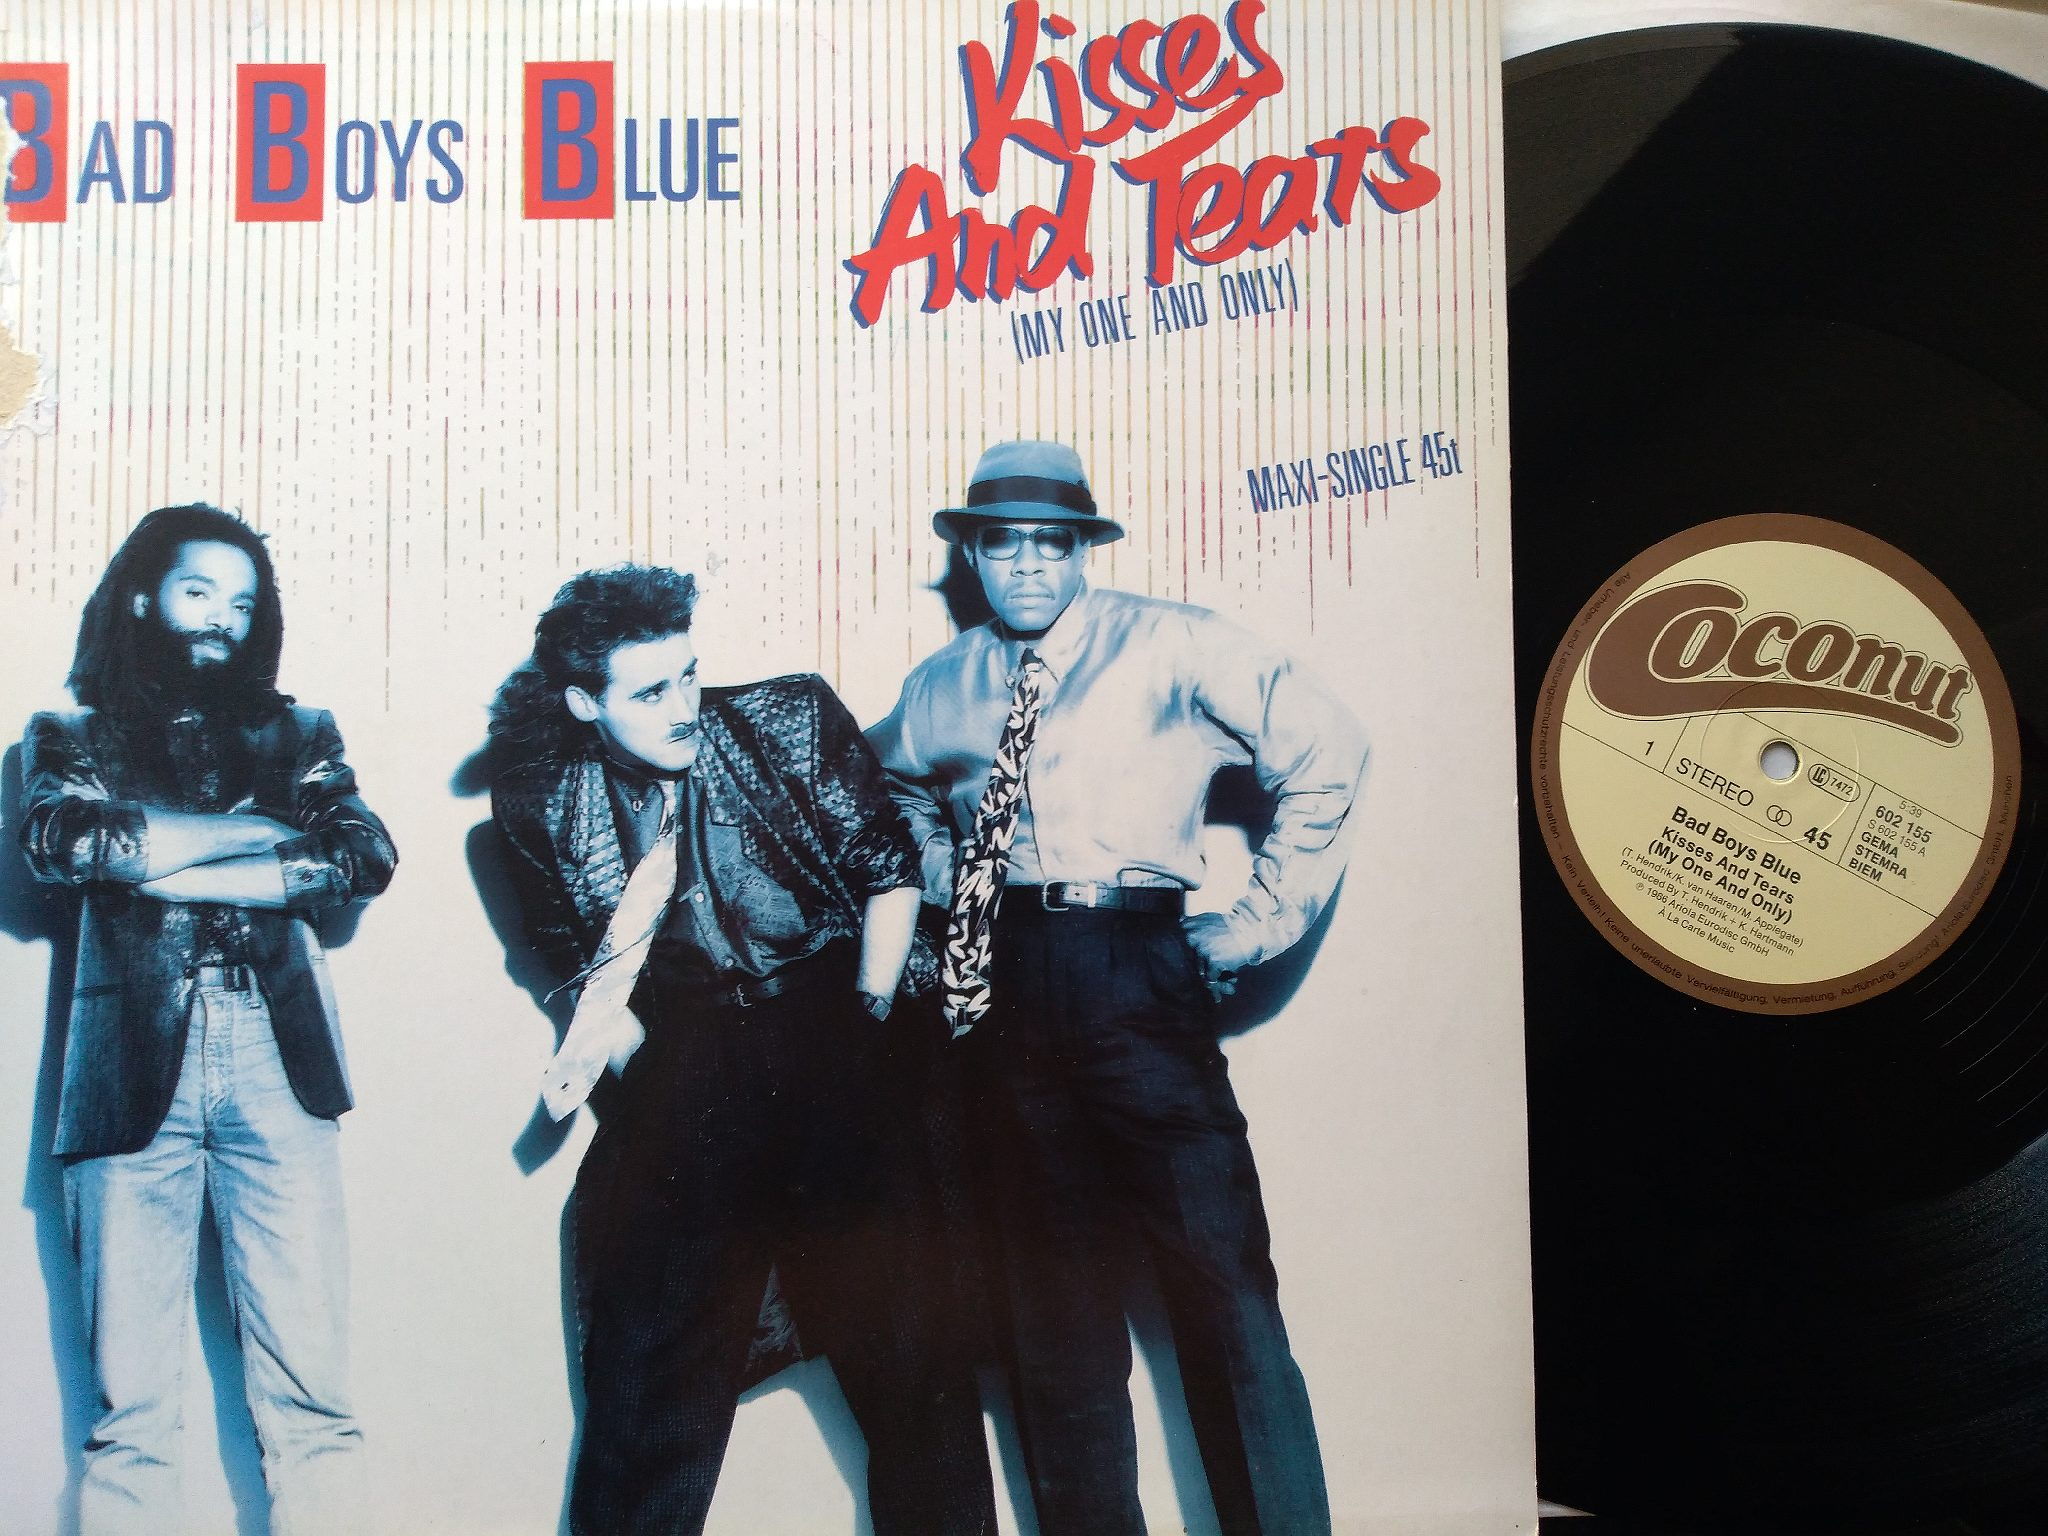 Bad Boys Blue - Kisses And Teats